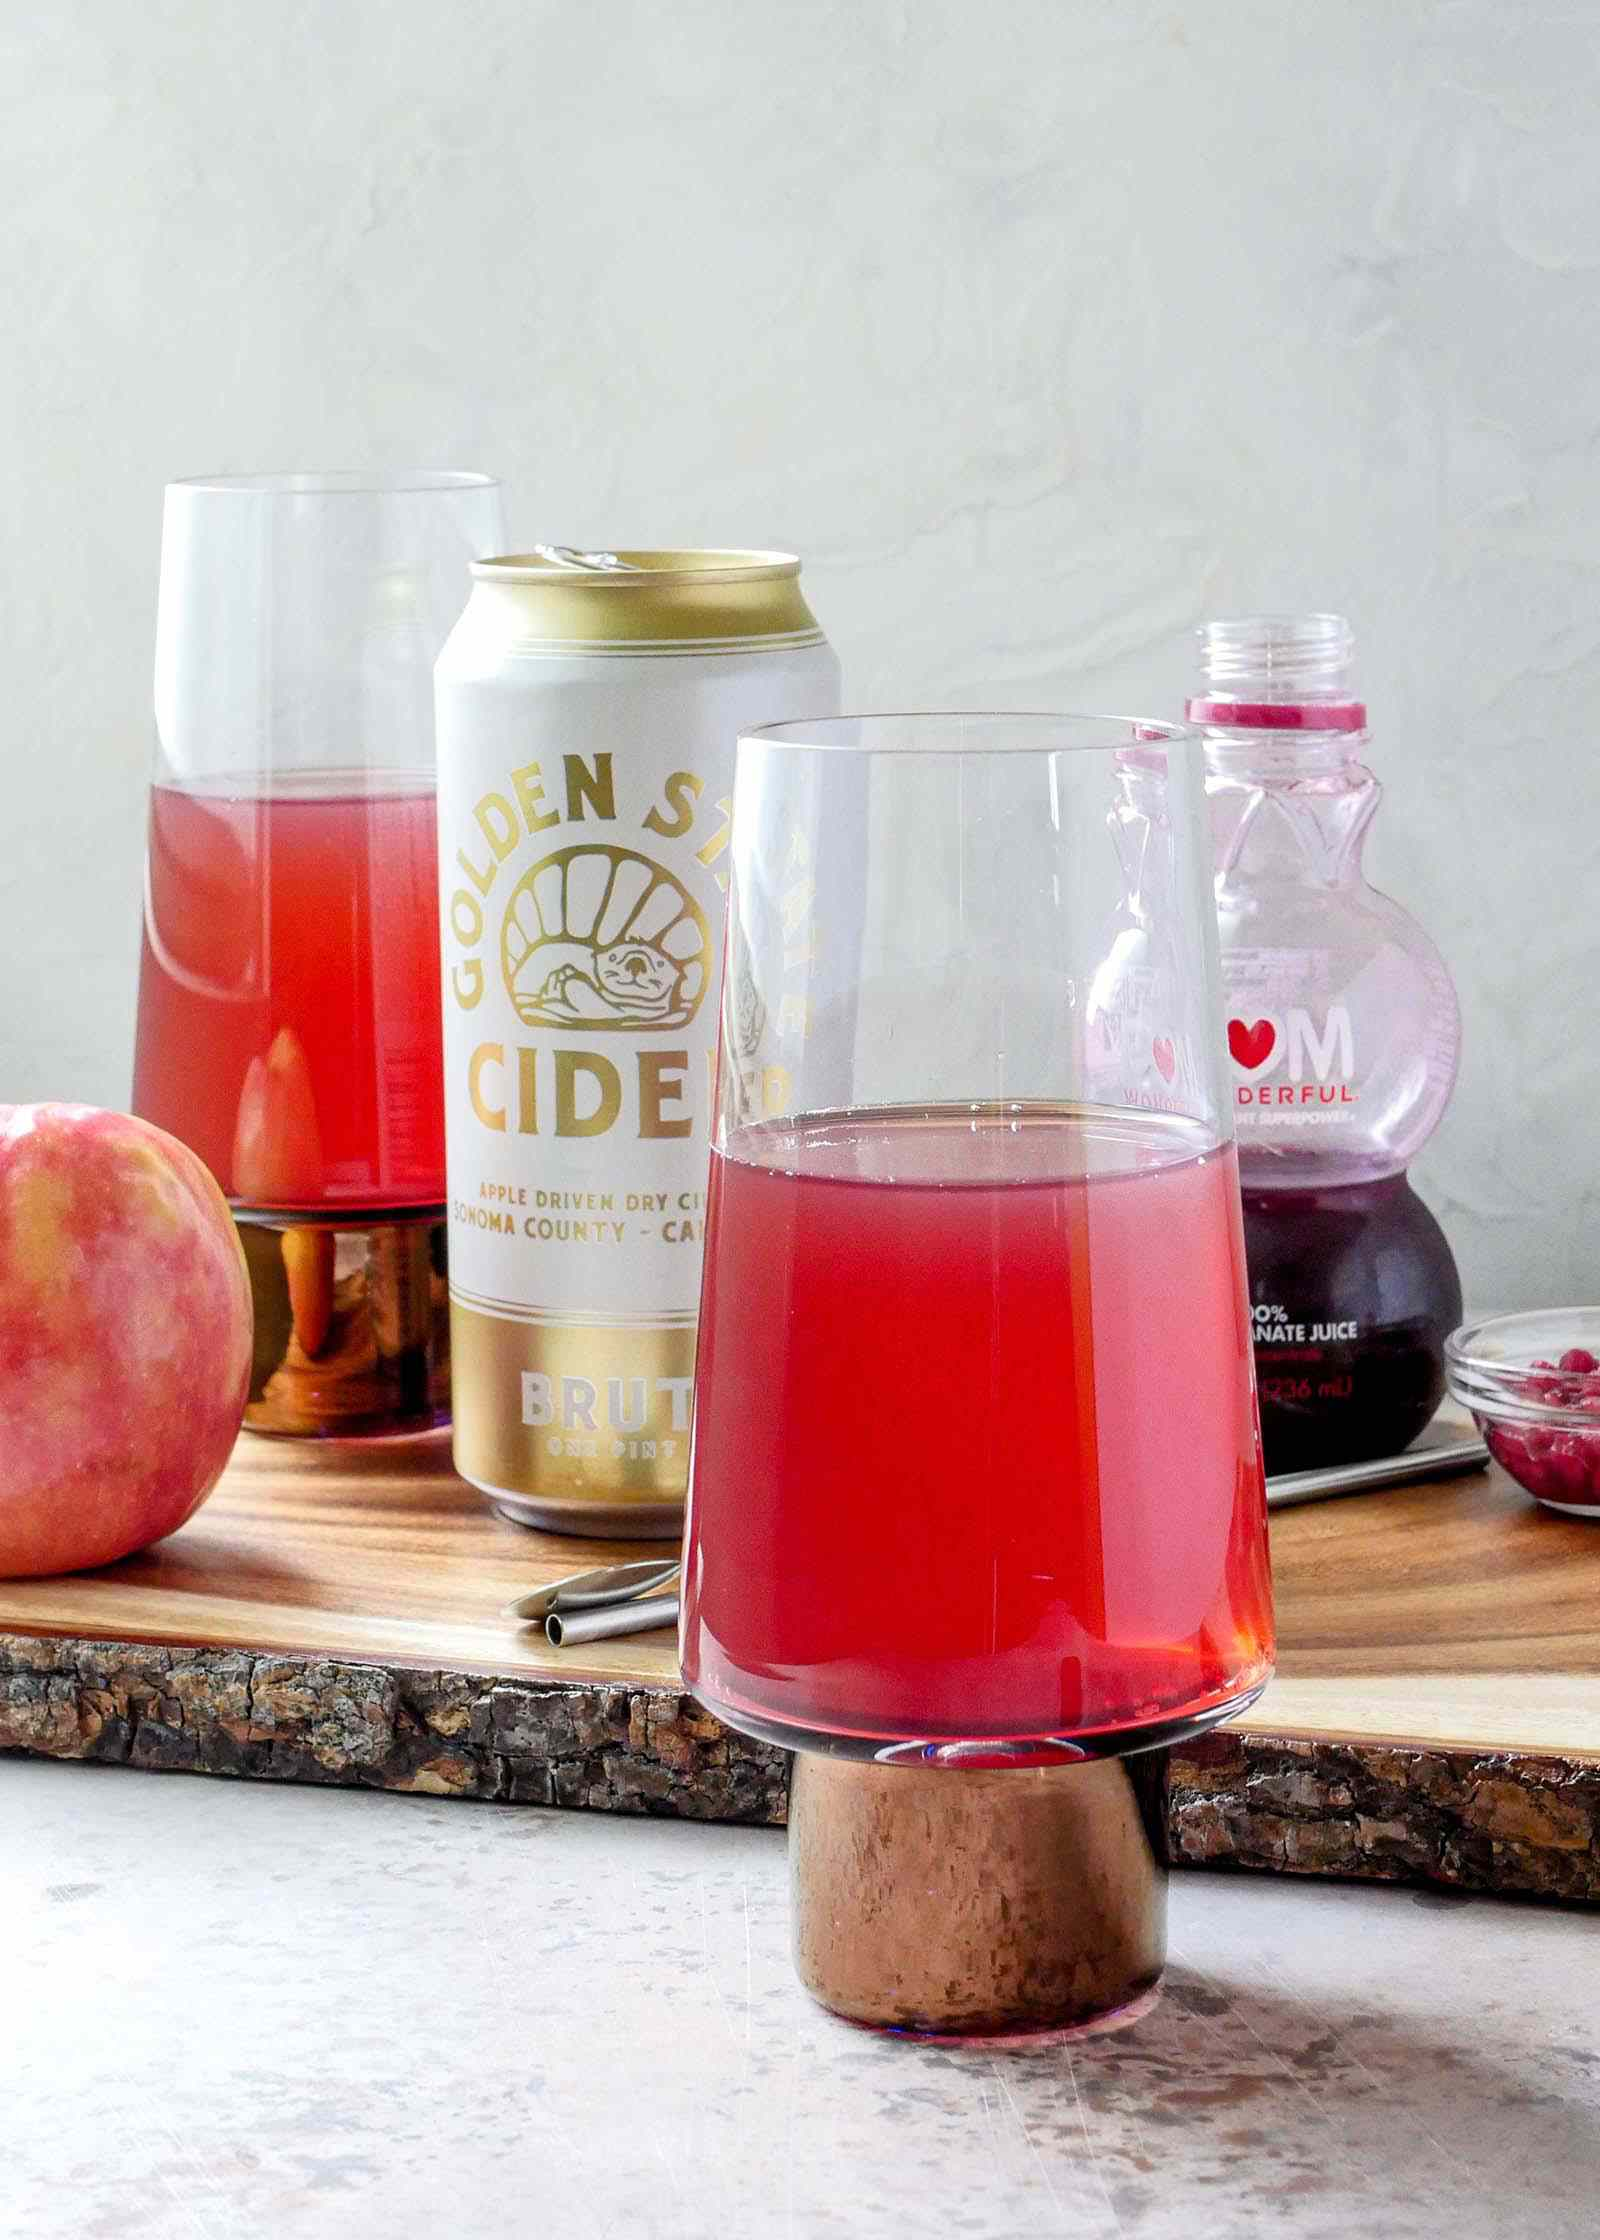 Ingredients for Pomegranate Mimosa with Hard Cider on a wooden board with an apple and a second mimosa interspersed.